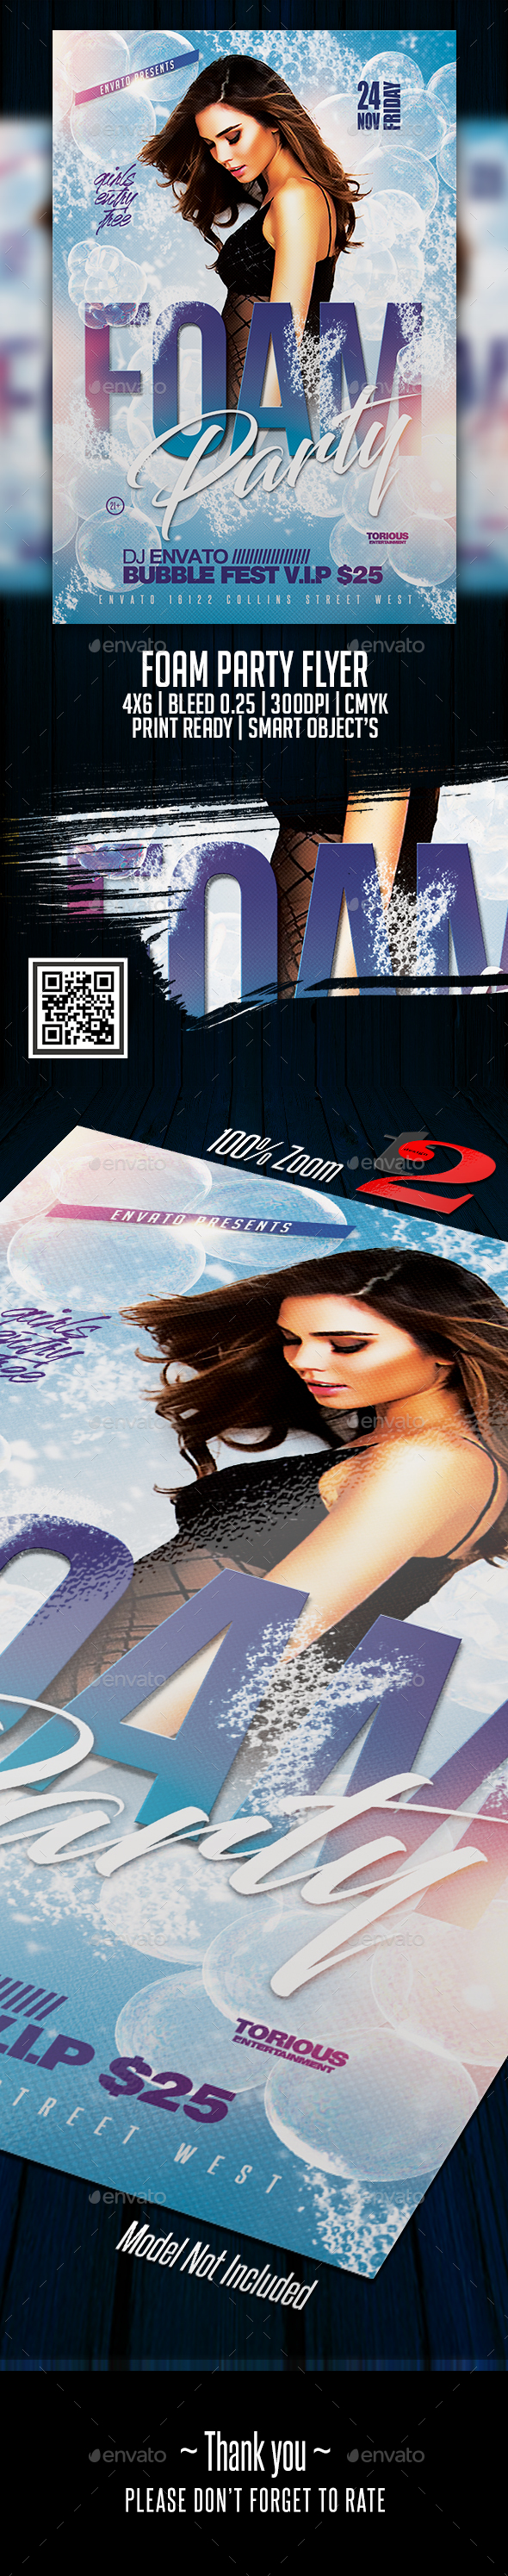 Foam Party Flyer Template - Clubs & Parties Events